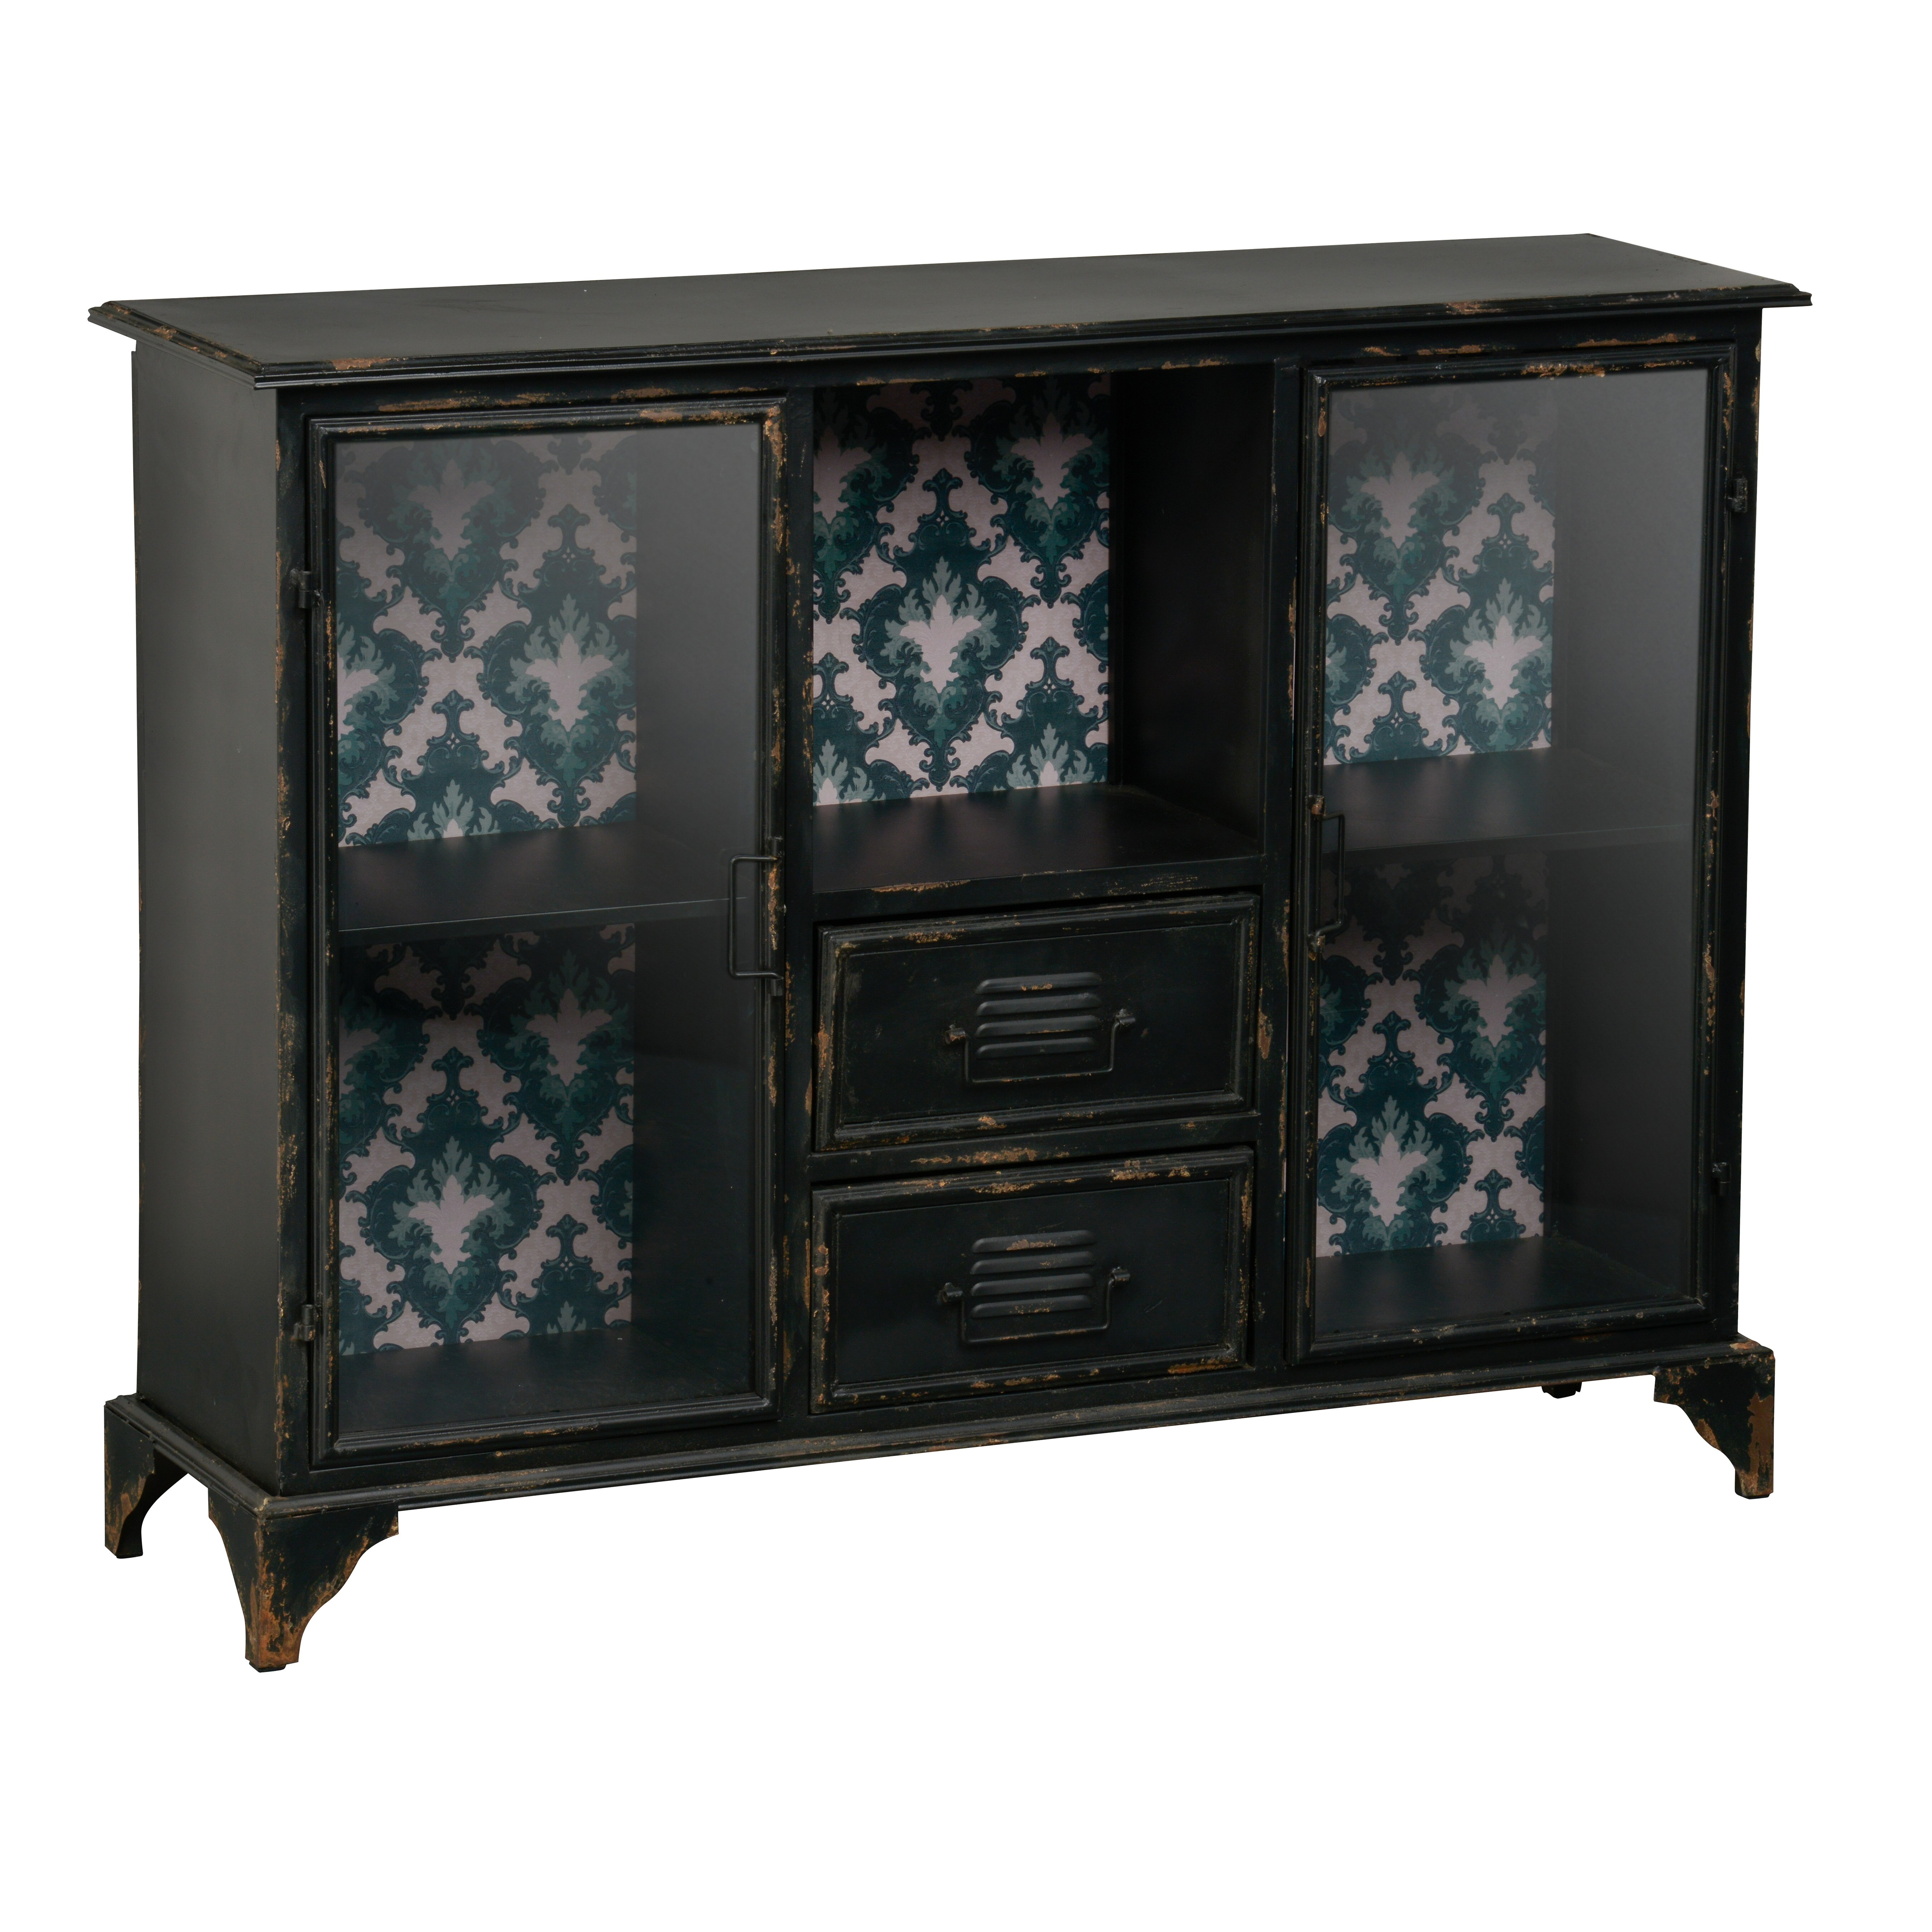 #5B4E44 All Home New York Bantock Display Cabinet & Reviews  with 5400x5400 px of Brand New Glass Display Cabinets York 54005400 pic @ avoidforclosure.info